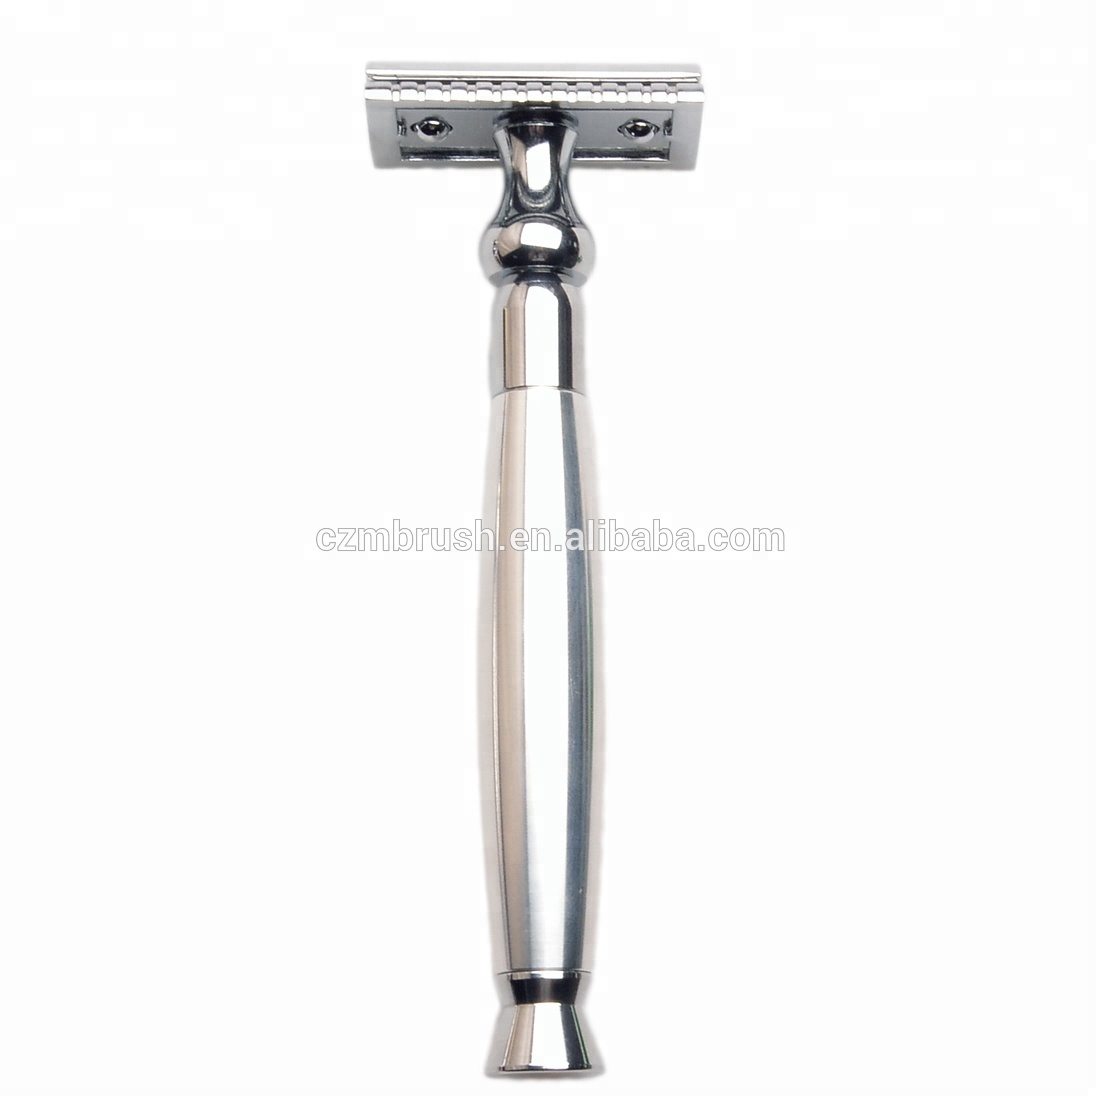 Vecchio stile Rasoio di Sicurezza lame Double Edge Reloadable Style Chrome Rasoio Da Barba